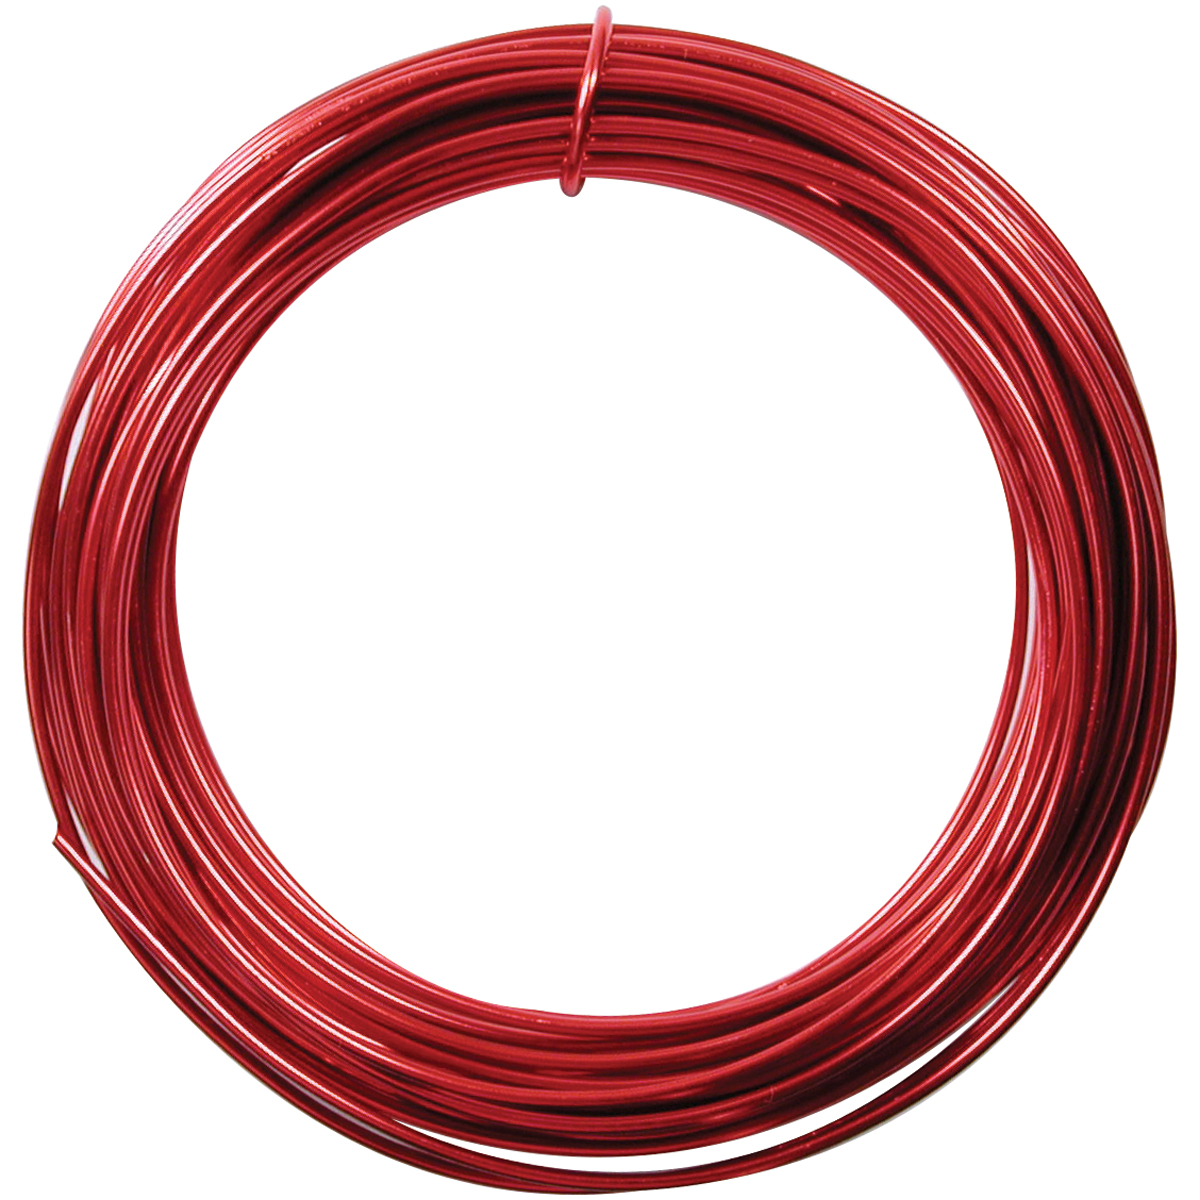 Aluminum Wire, 12 Gauge, 39' Coil, Red